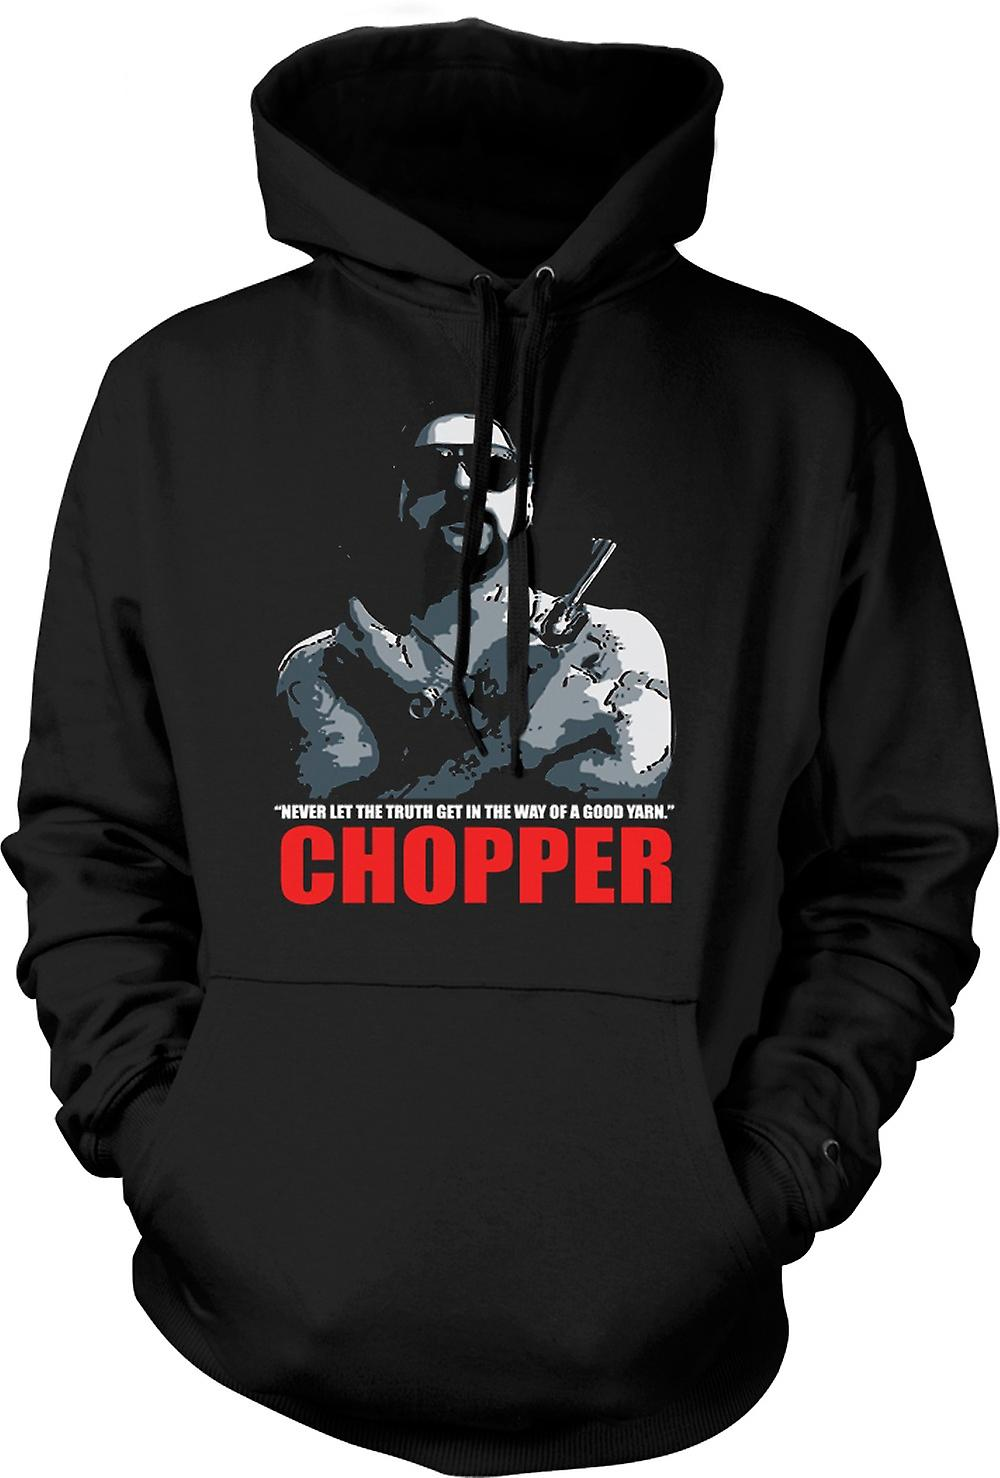 Mens Hoodie - Chopper - Reid goed garen - Movie - Comedy